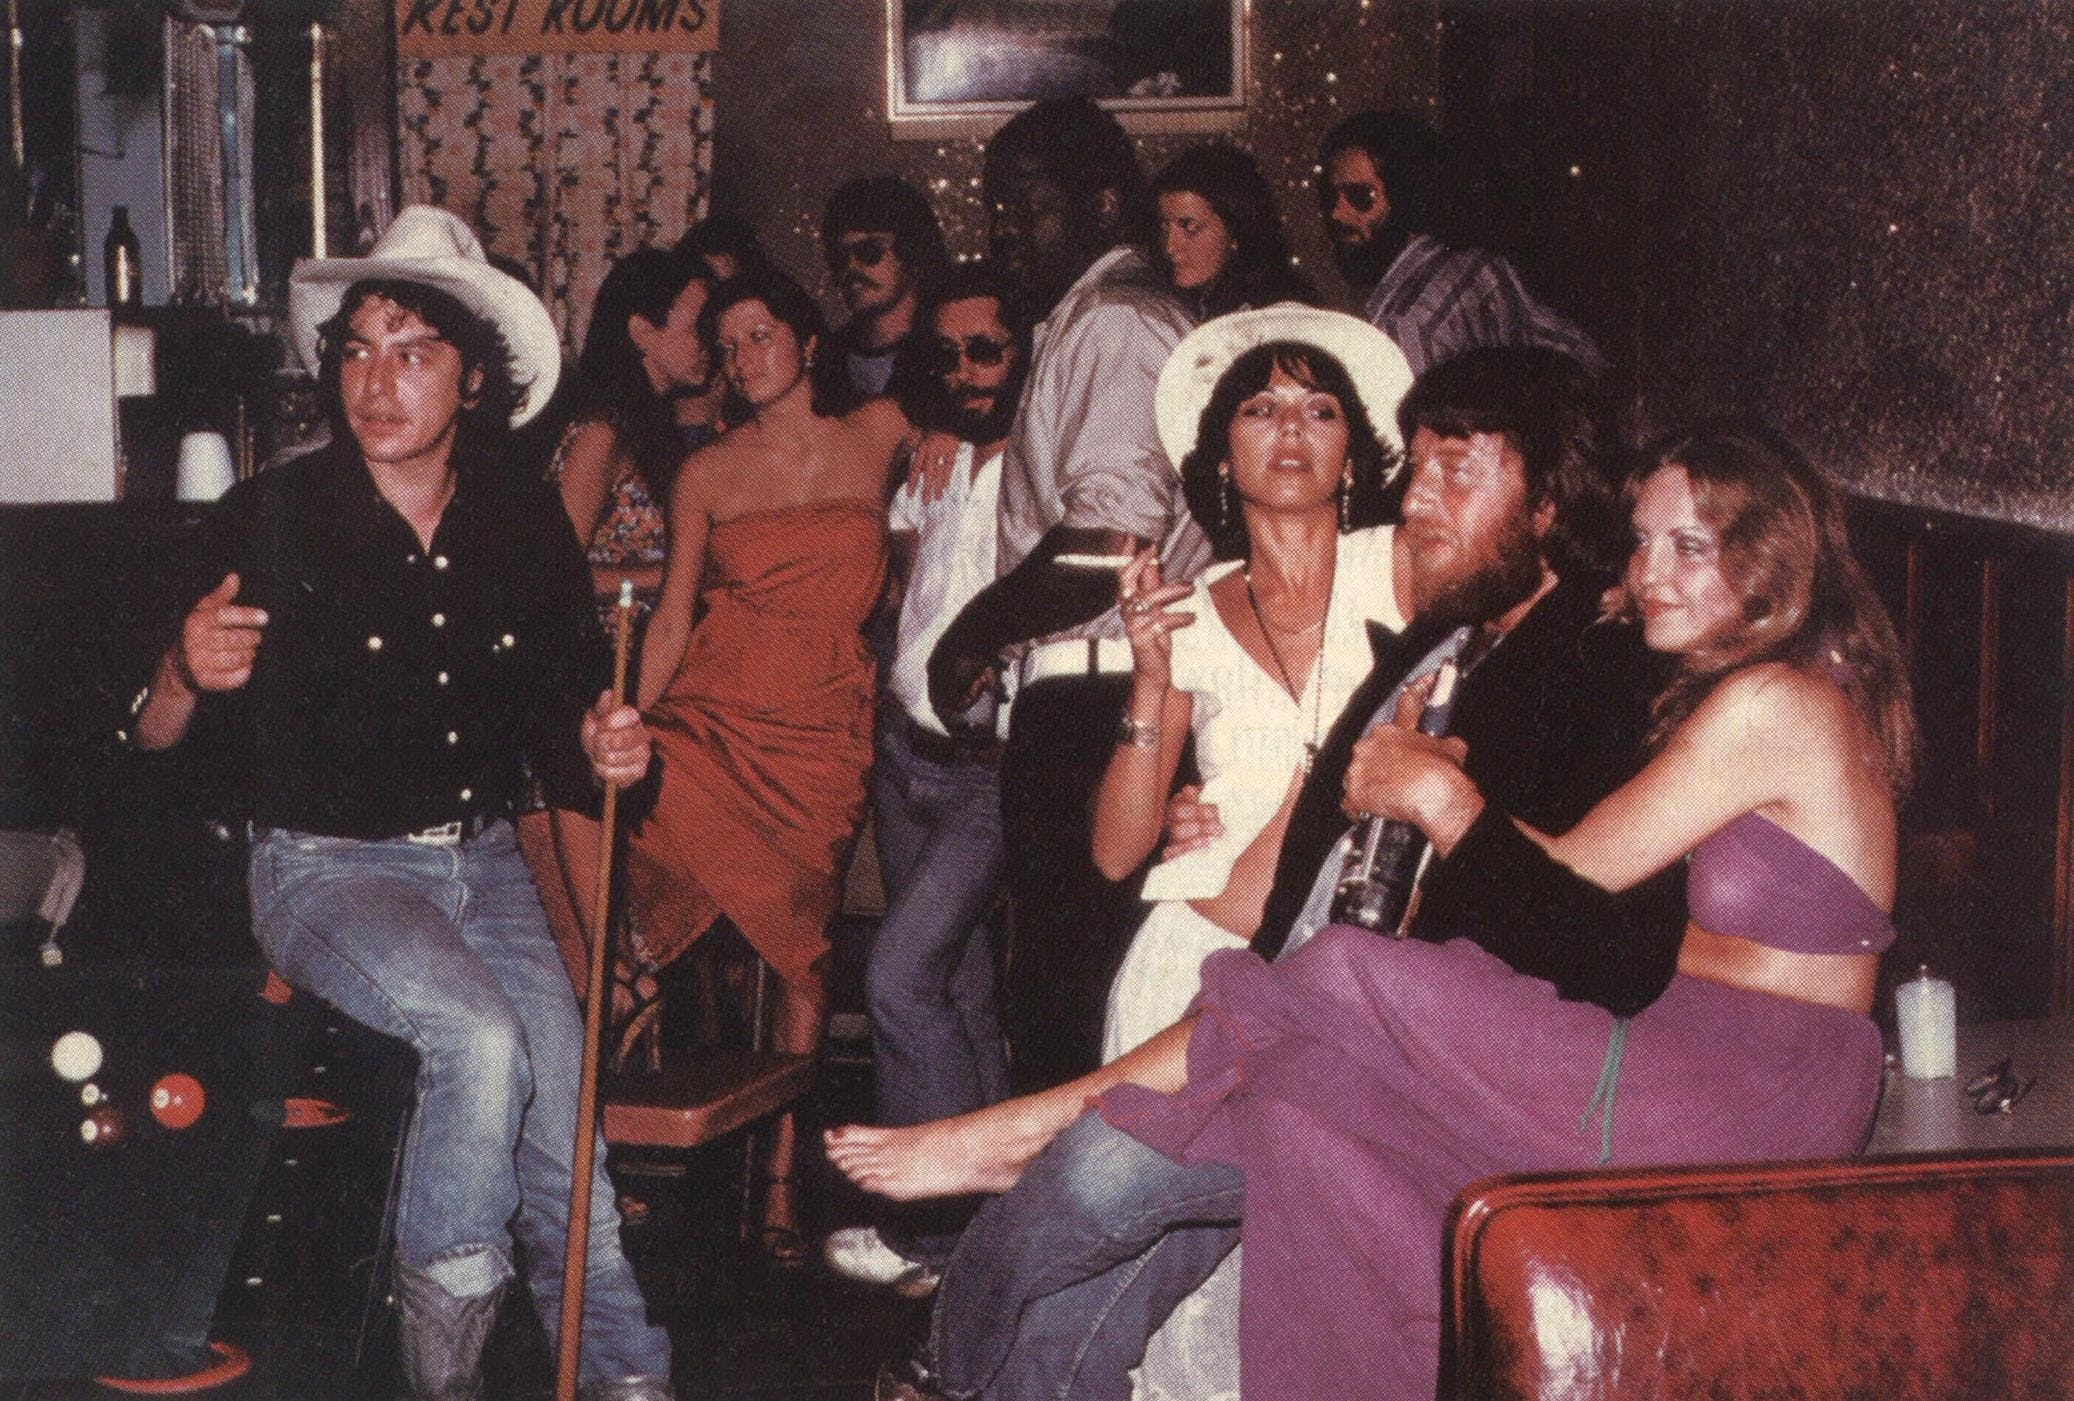 Mid-seventies: The Joe Ely Band hanging out with C. B. Stubblefield (center) at Stubb's Bar-B-Q. From left, Ely, steel guitarist Lloyd Maines (against the back wall), accordion player Ponty Bone, bassist Greg Wright (in the corner), guitarist Jesse Taylor.